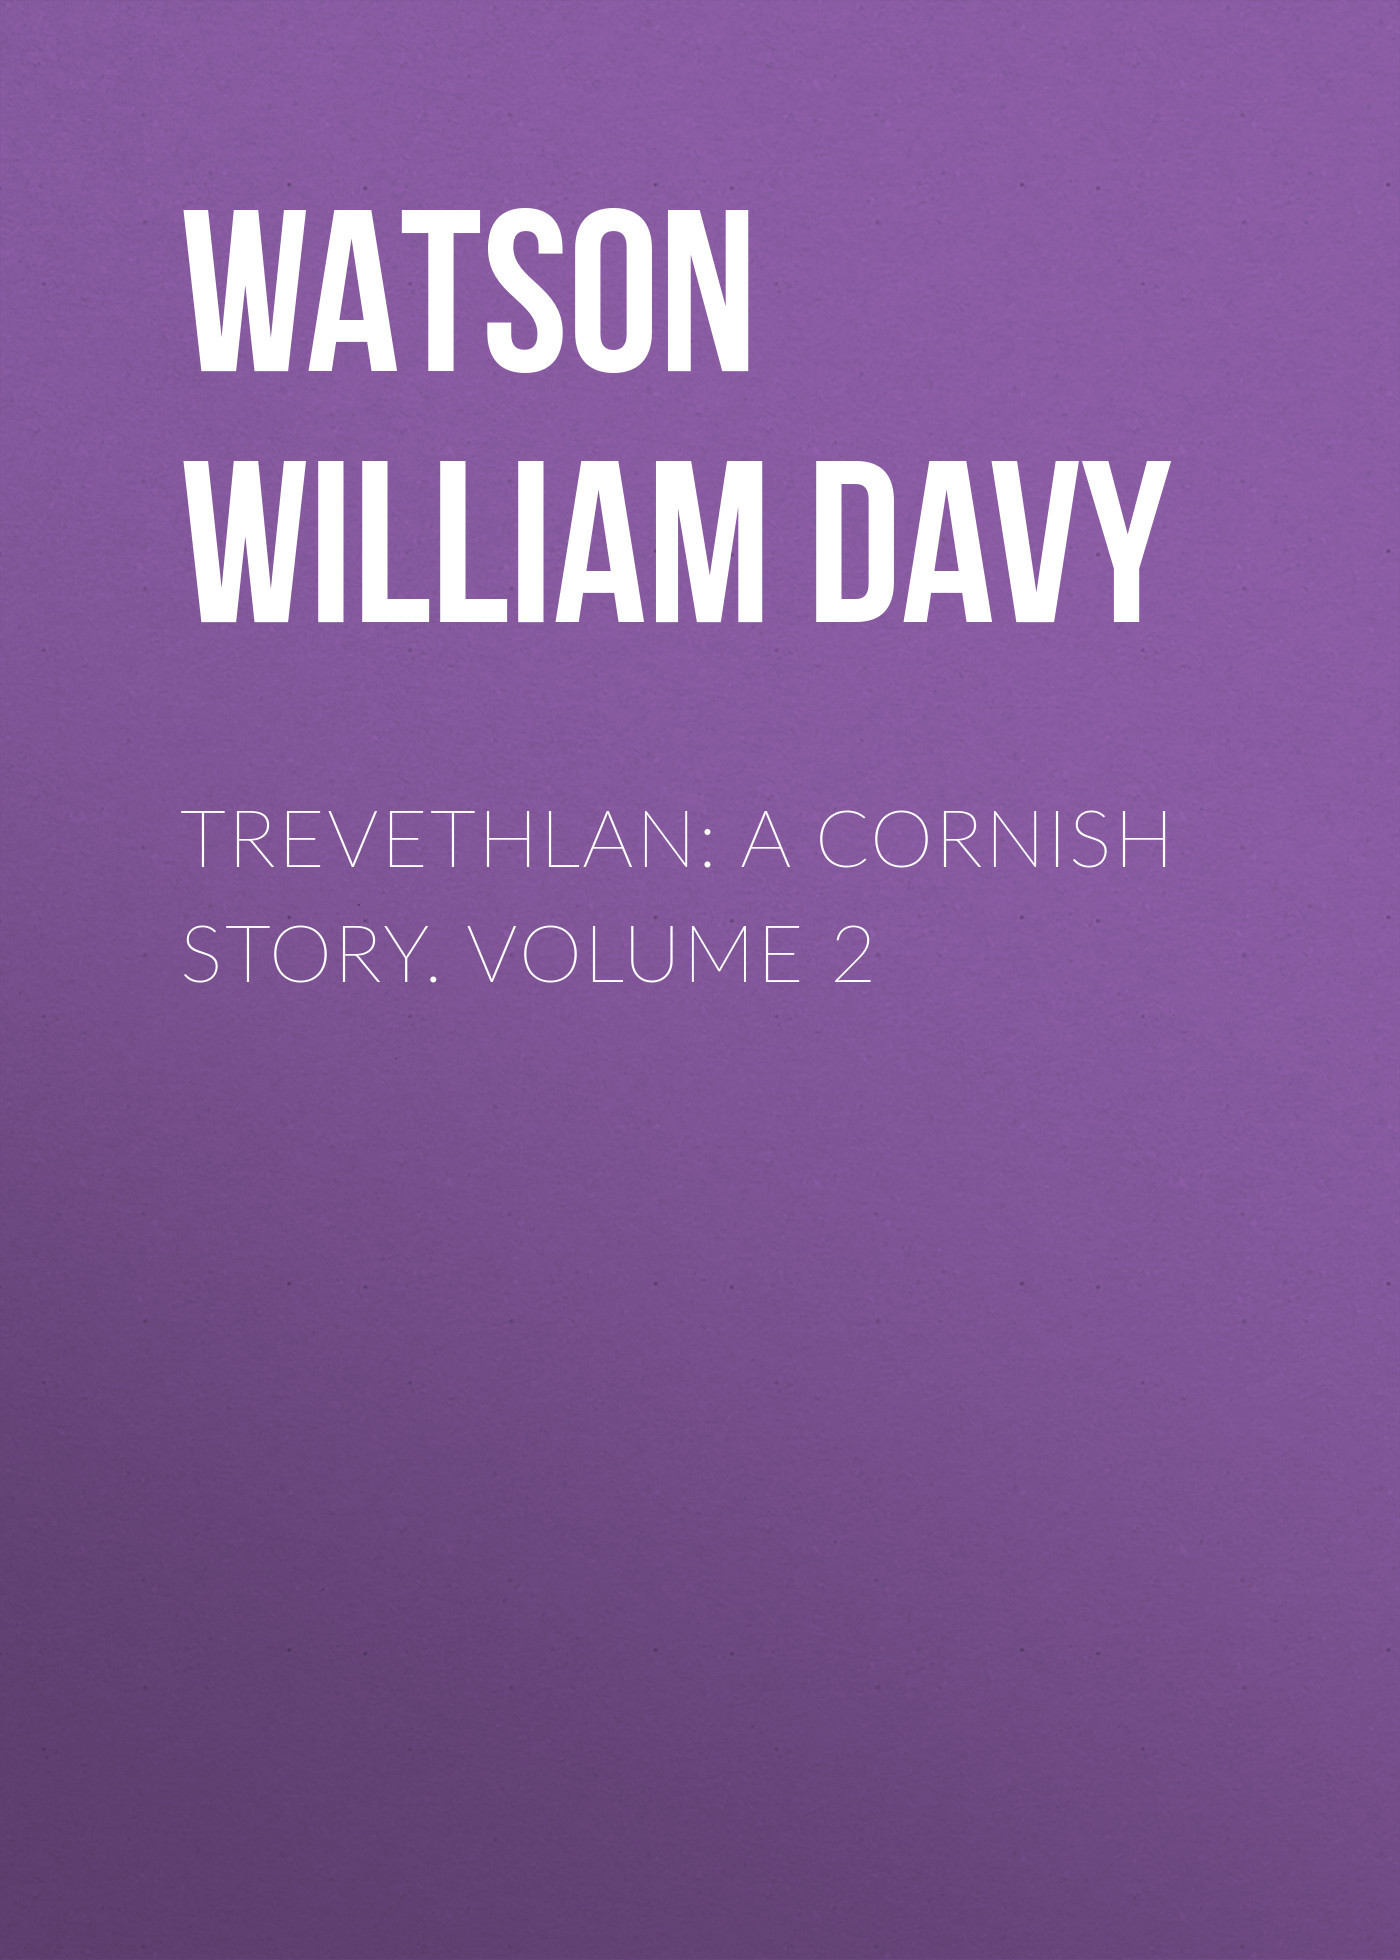 Watson William Davy Trevethlan: A Cornish Story. Volume 2 watson william davy trevethlan a cornish story volume 3